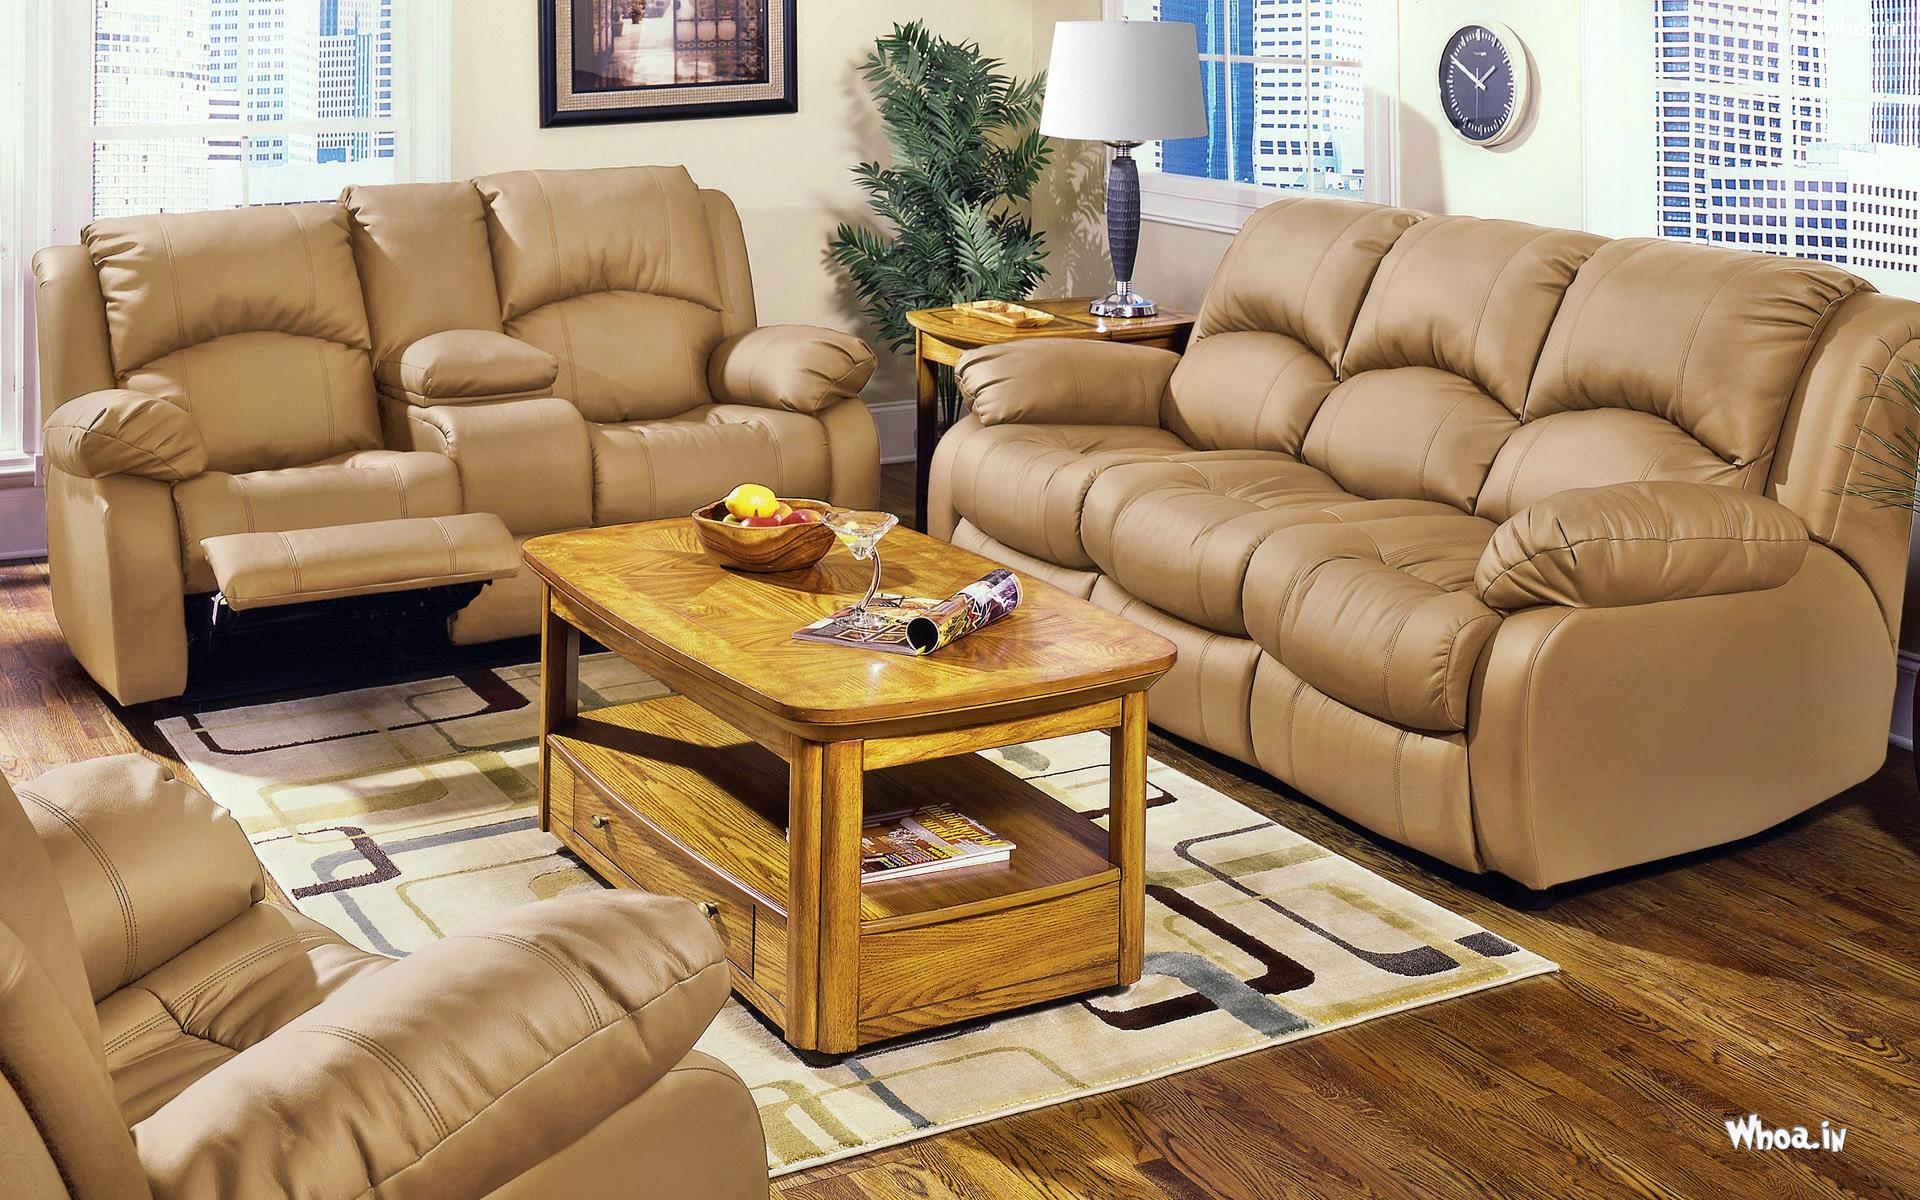 3 X 2 X 1 Gry Leather Sofa For Interior Design